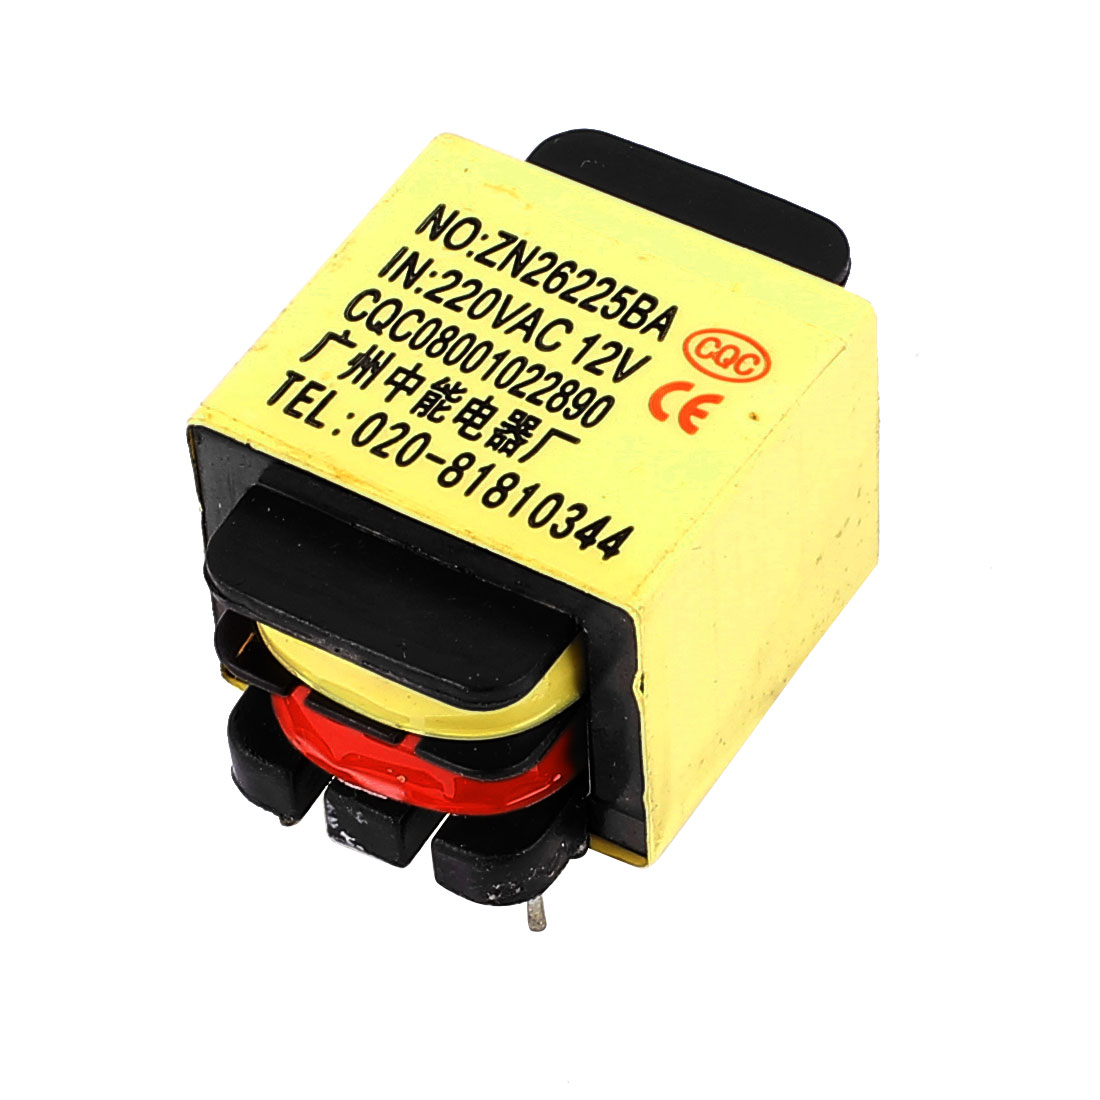 220V Input 12V 1.2VA Output Yellow Red Ferrite Core Power Transformer ZN26225BA